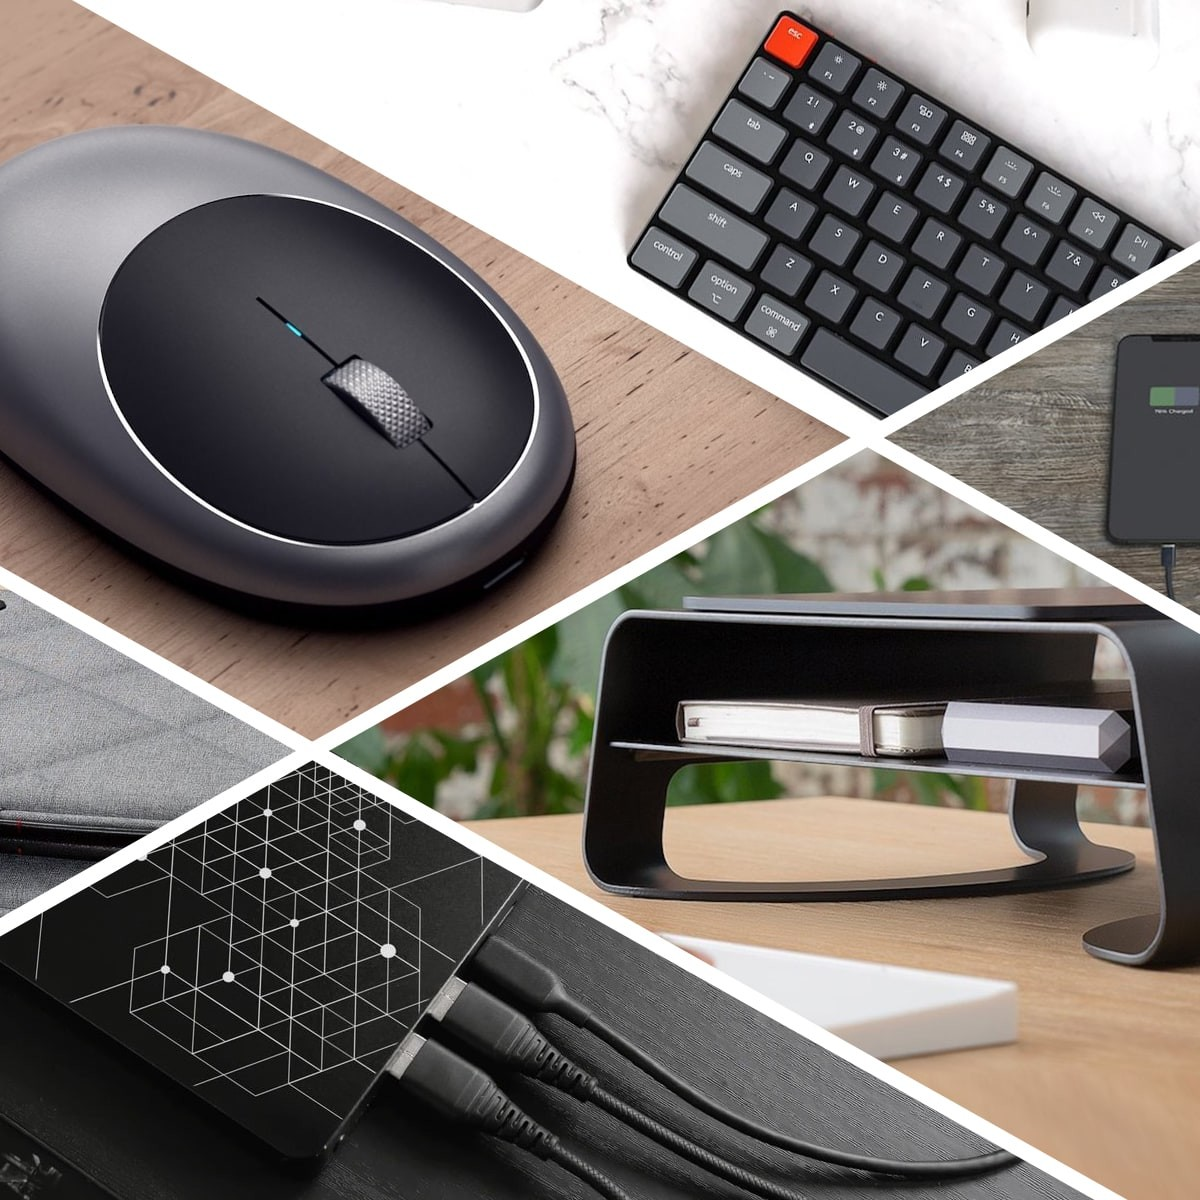 The best MacBook gadgets—discover the best stands, chargers, cases, and more thumbnail